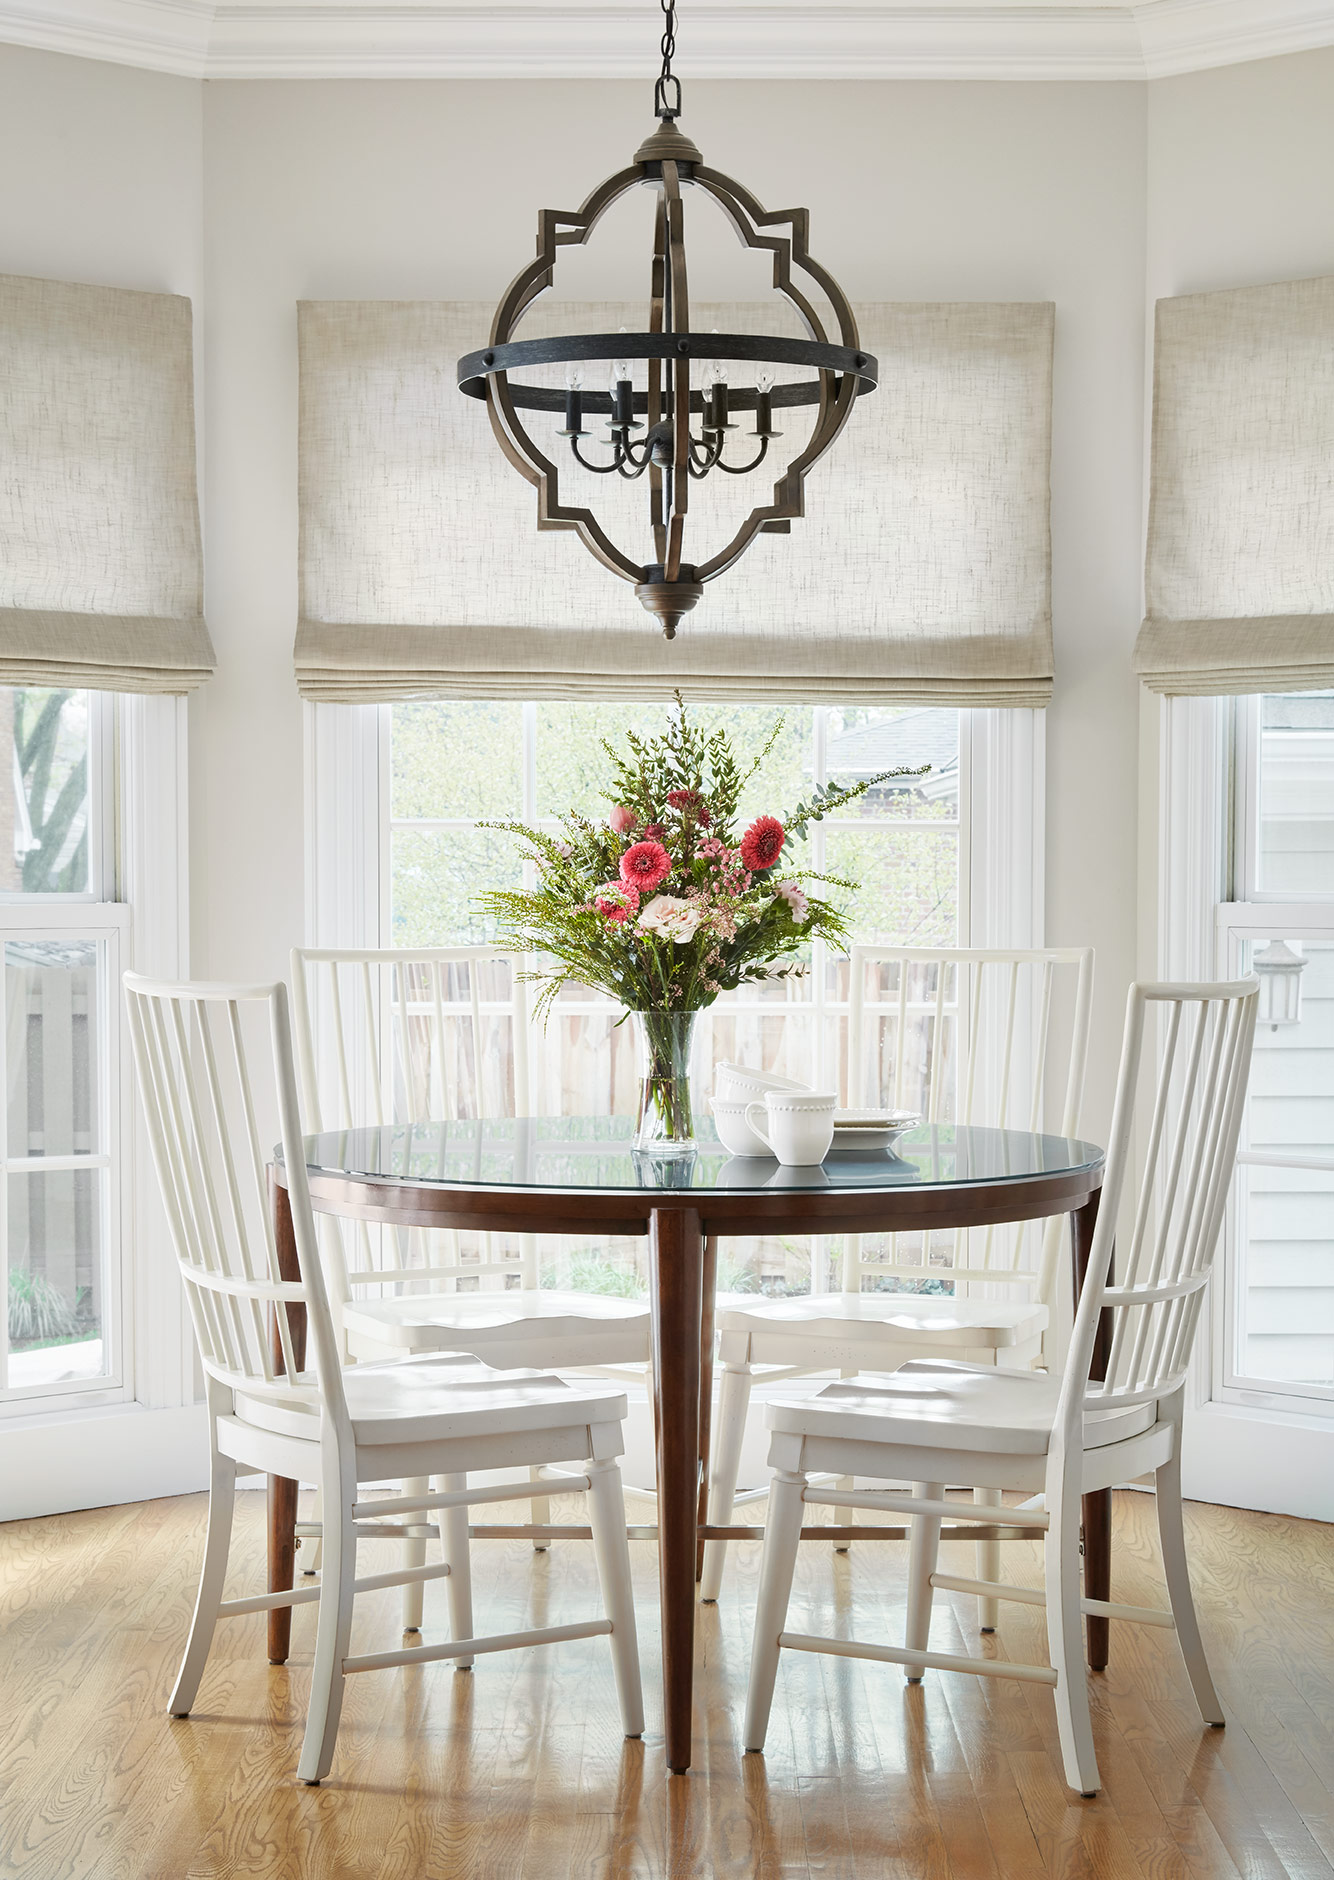 Breakfast Nook - Interior Design - Art Curation by Paula Interiors